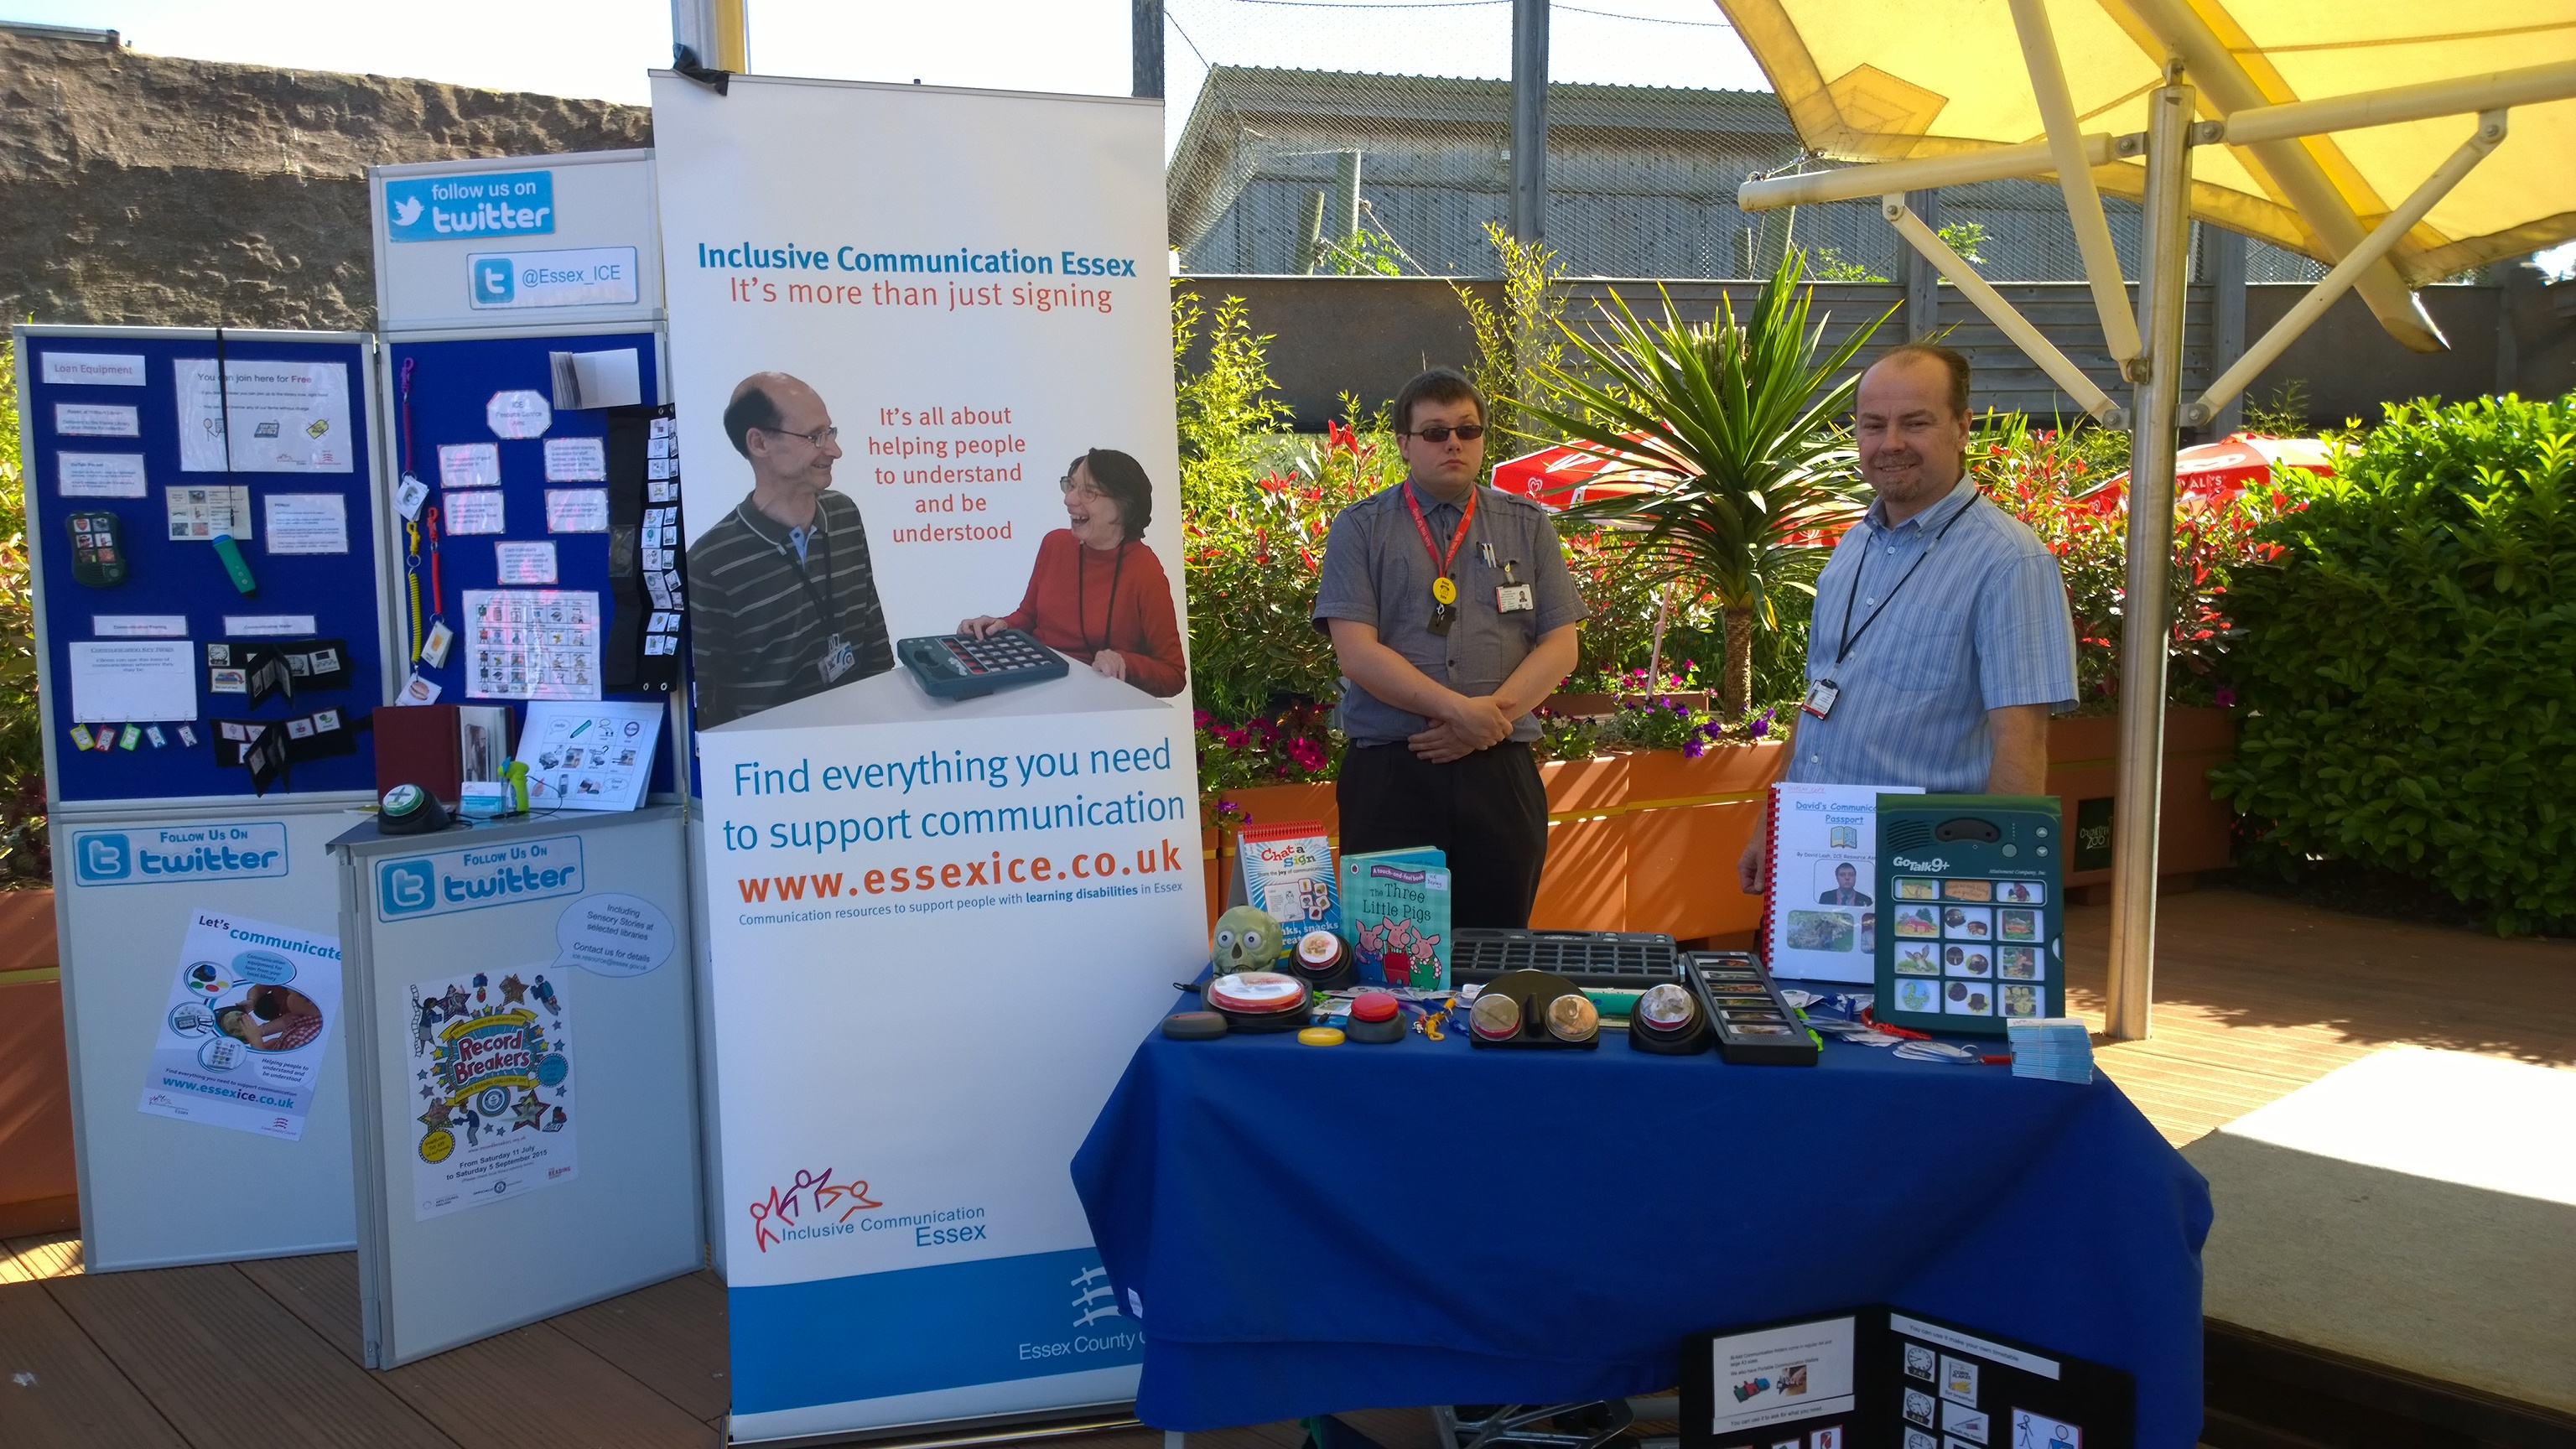 Inclusive Communication Essex display stand at Colchester Zoo